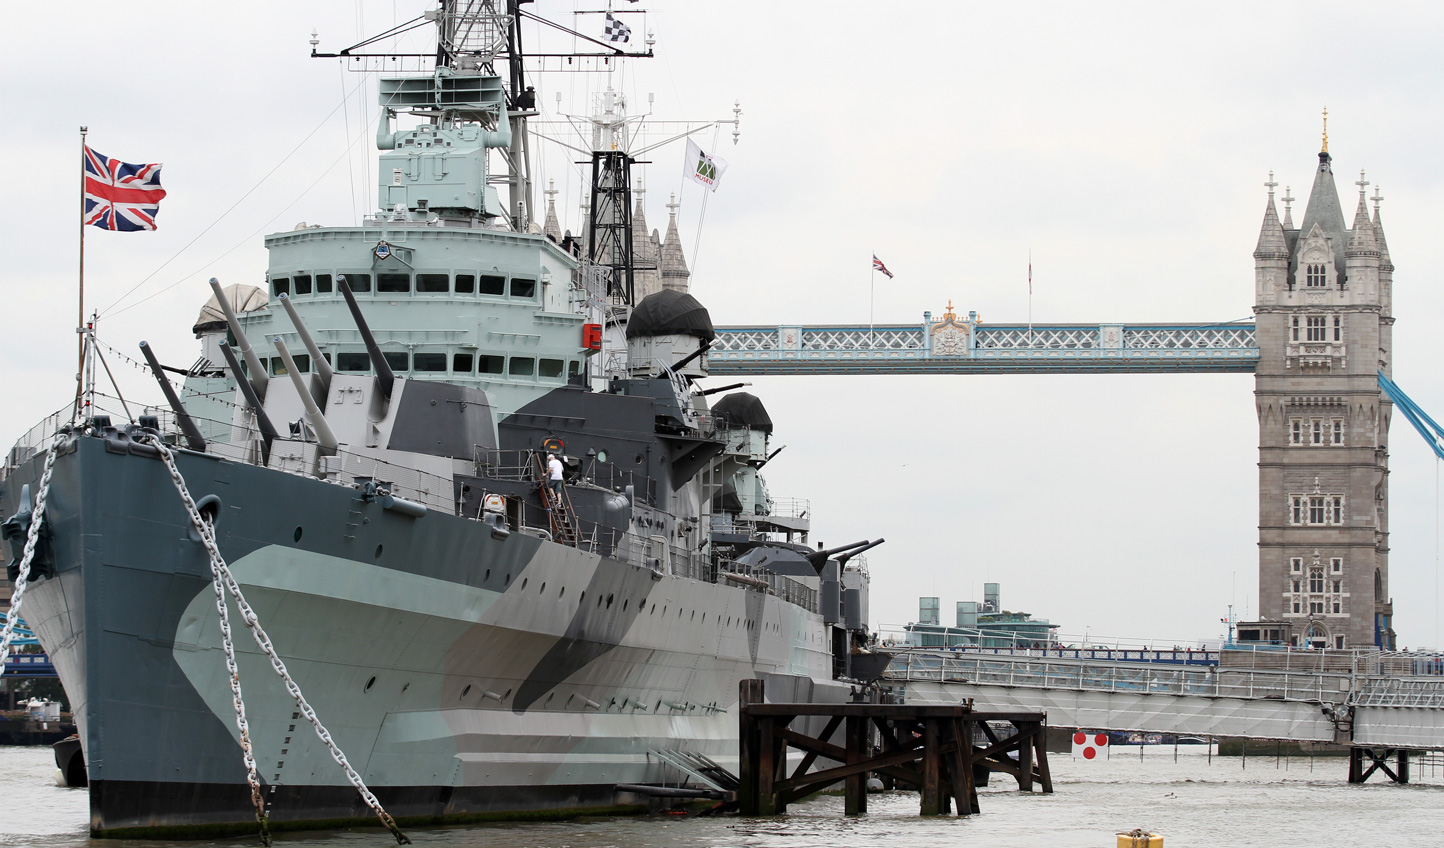 Take an exclusive tour of the historic HMS Belfast